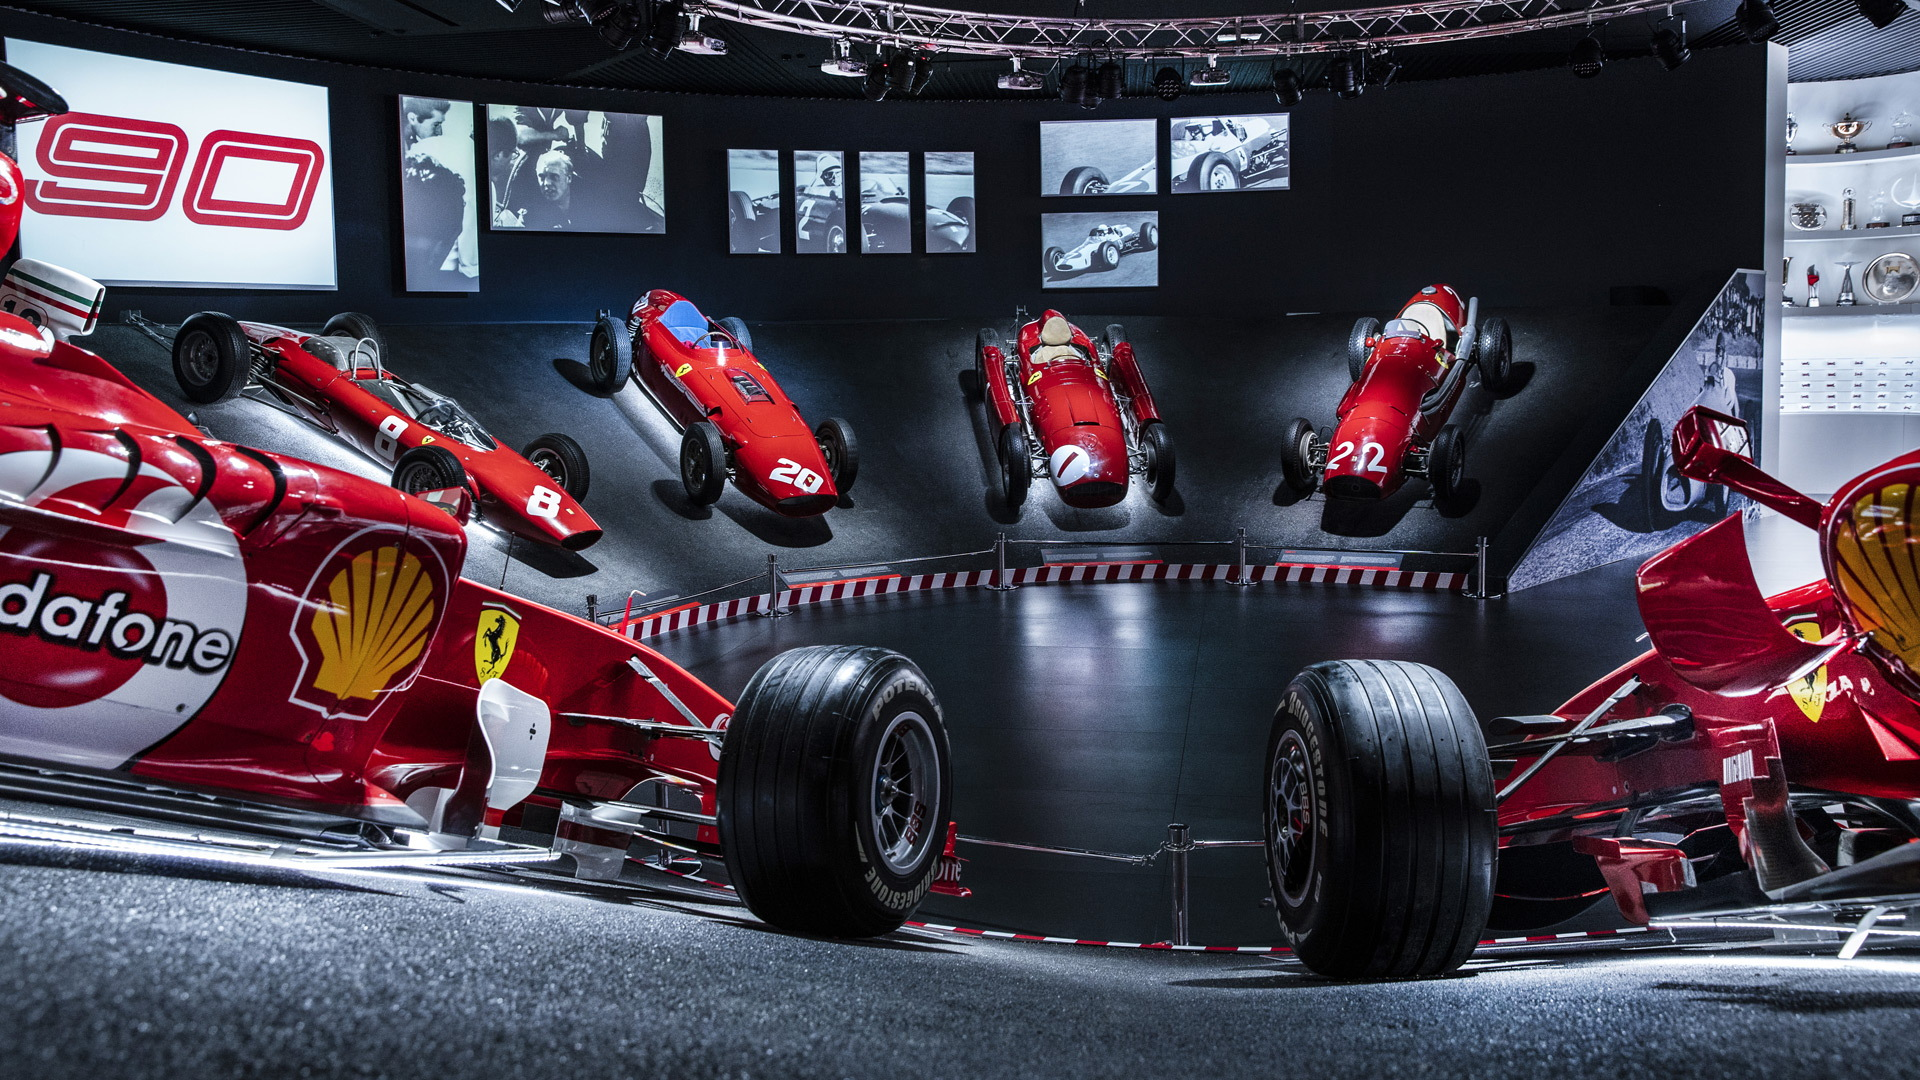 """90 Years Exhibition"" at the Ferrari Museum in Maranello, Italy"